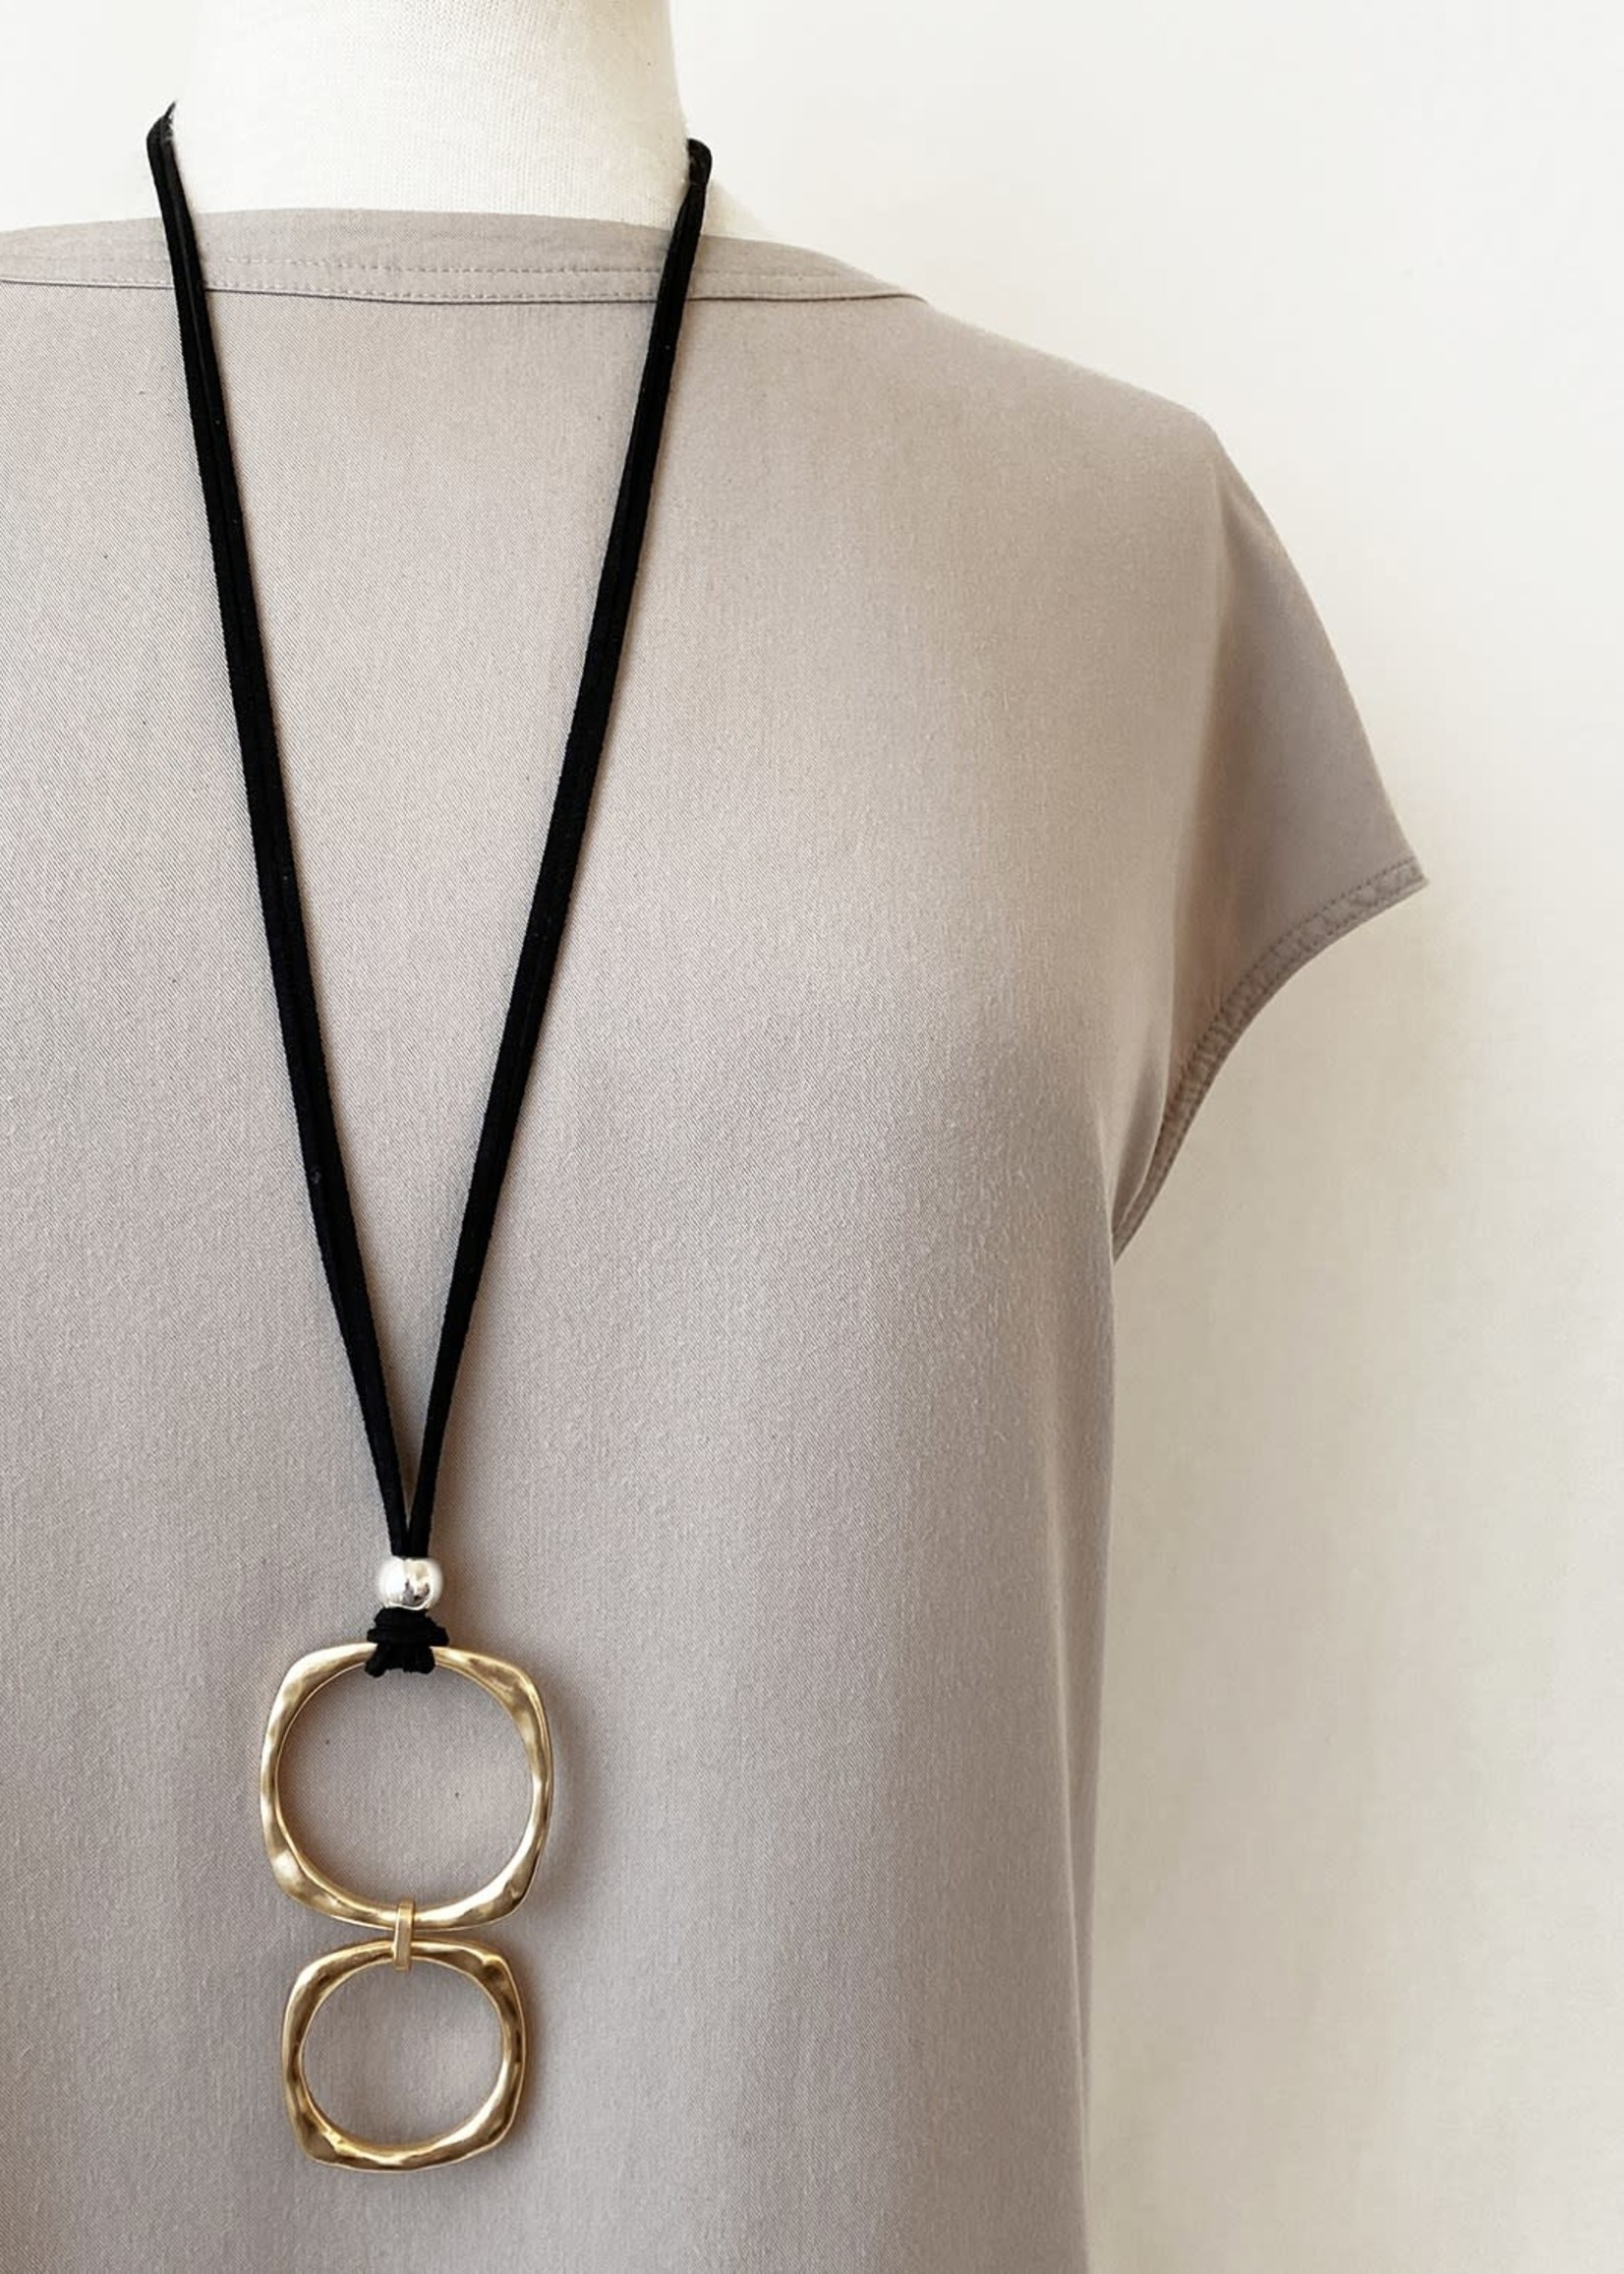 Caracol Pendant Black Suede Squared Rings Gold